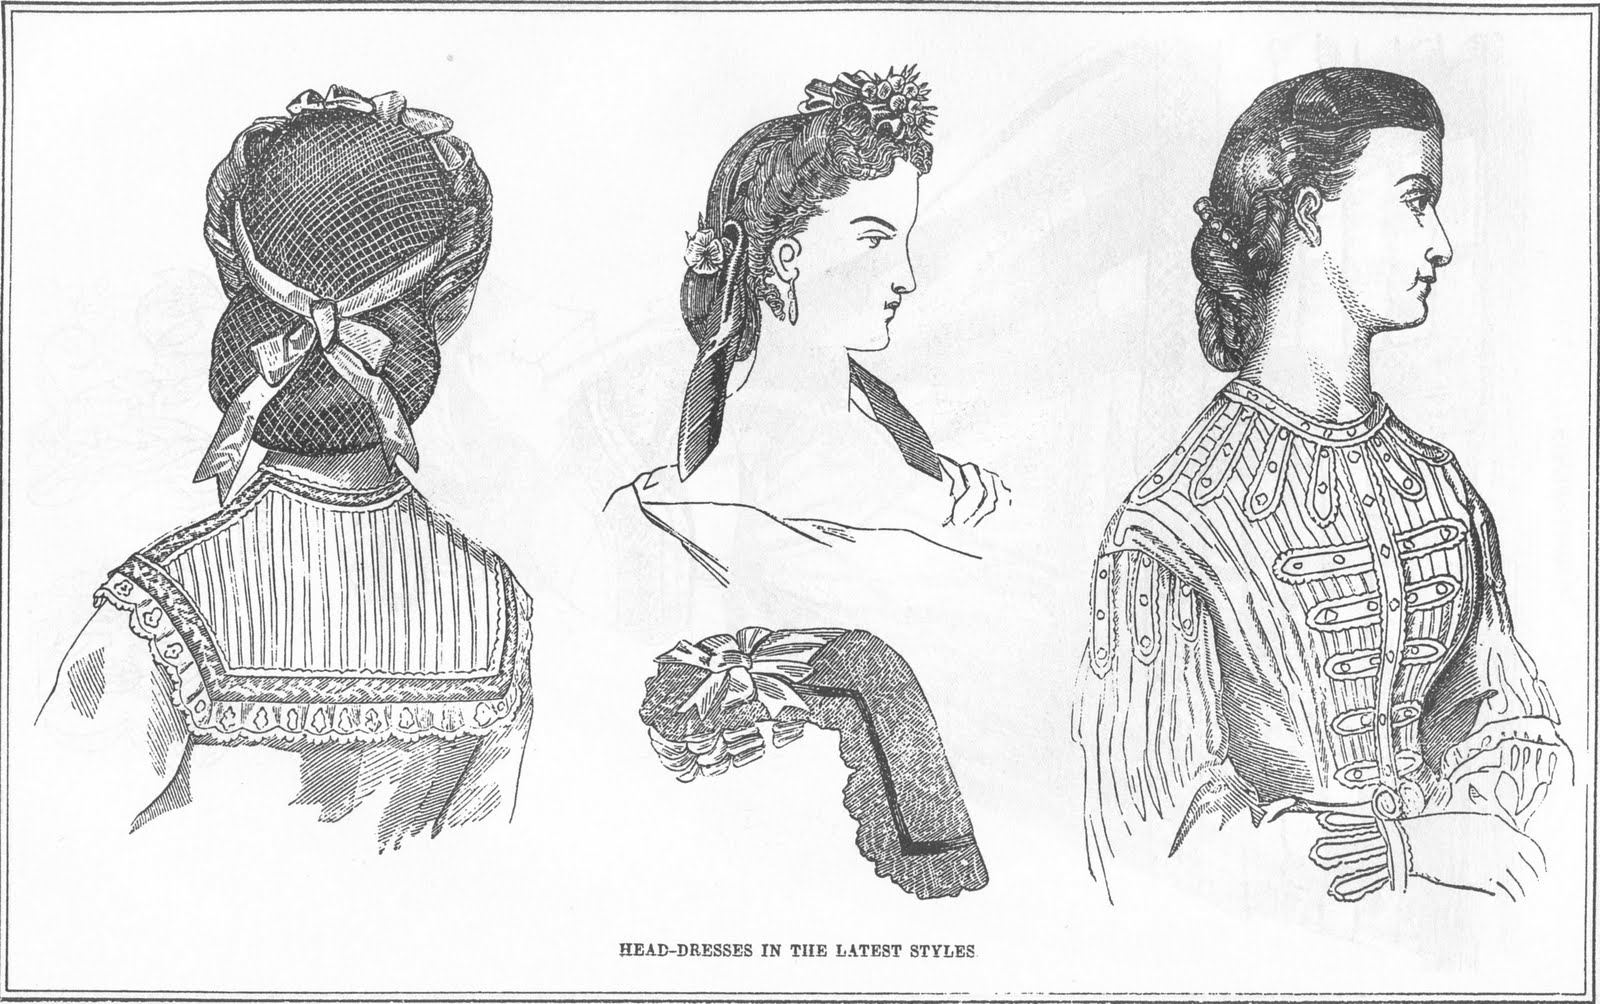 Phenomenal How We Do Run On Beyond The Chignon Part 1 Civil War Hairstyles Short Hairstyles For Black Women Fulllsitofus